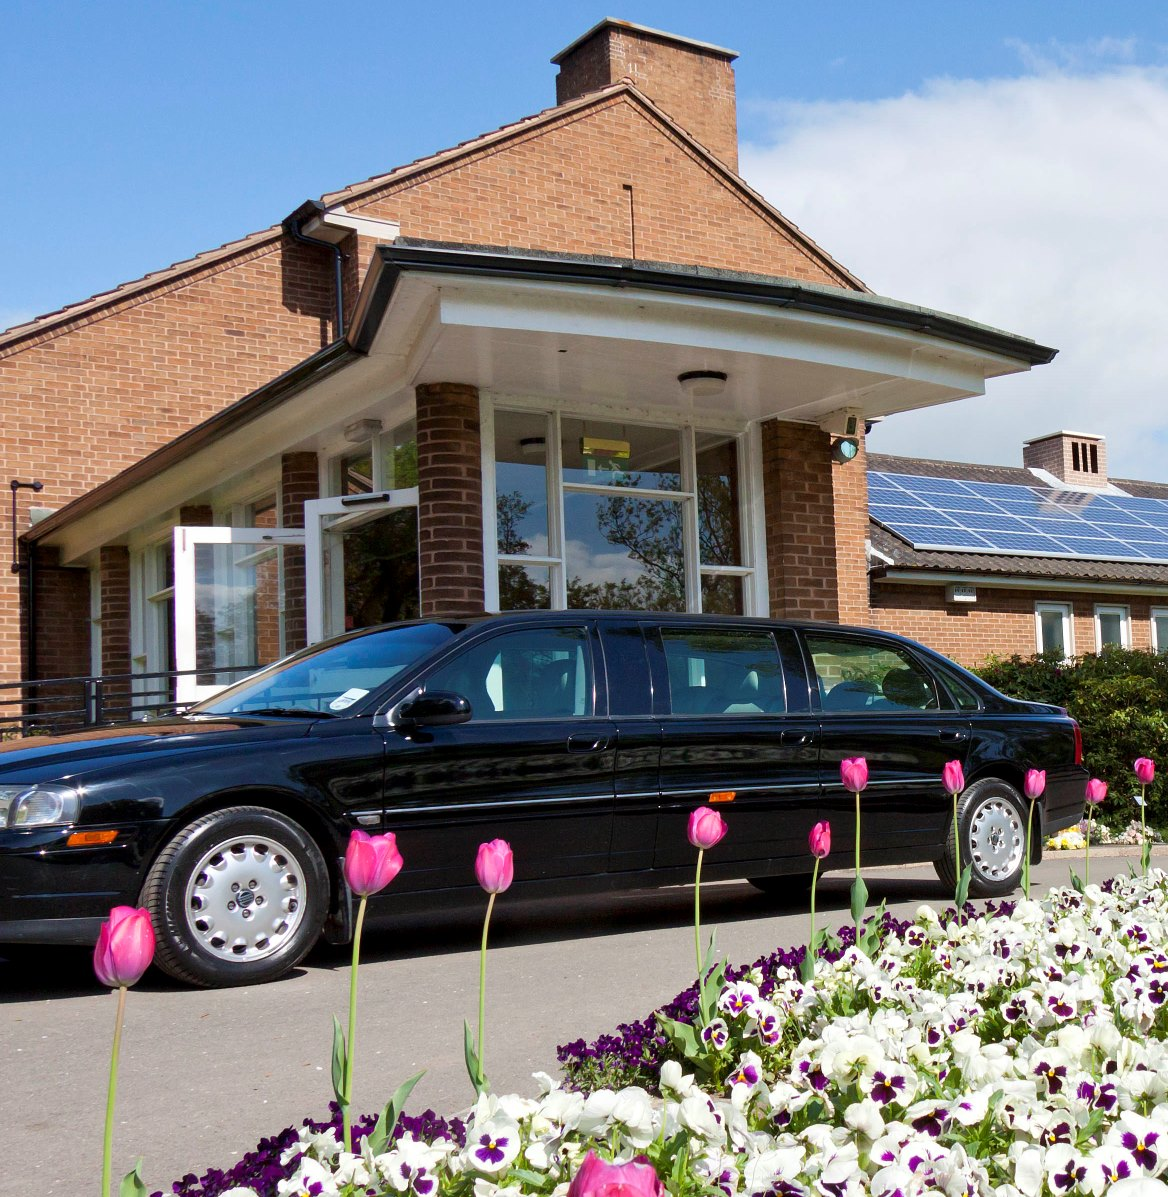 Open day at Chesterfield and District Crematorium